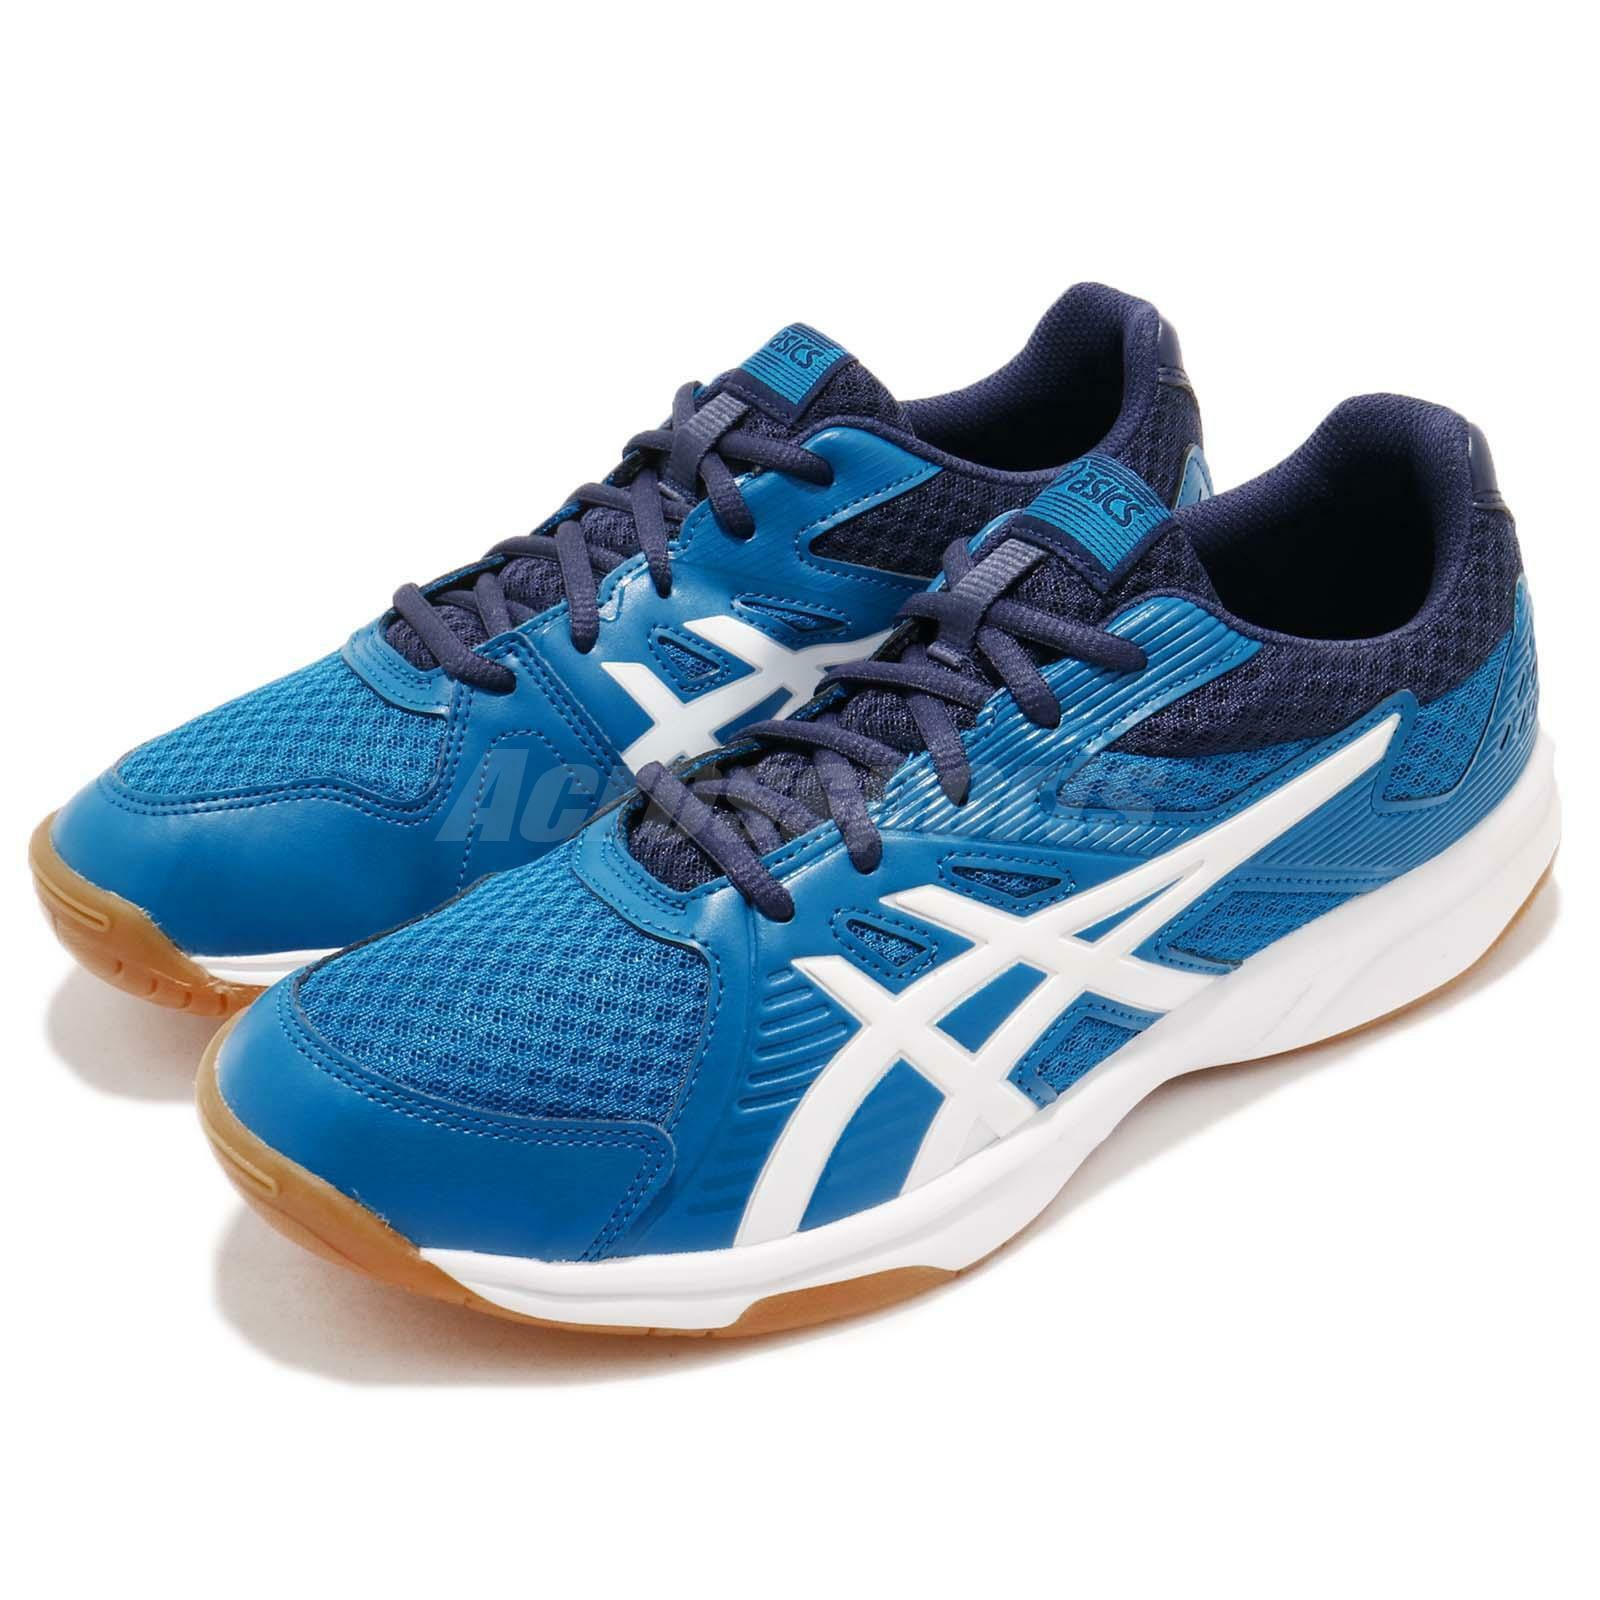 Asics Upcourt 3 Blue Navy White Gum Uomo Volleyball Badminton Shoes 1071A019-400